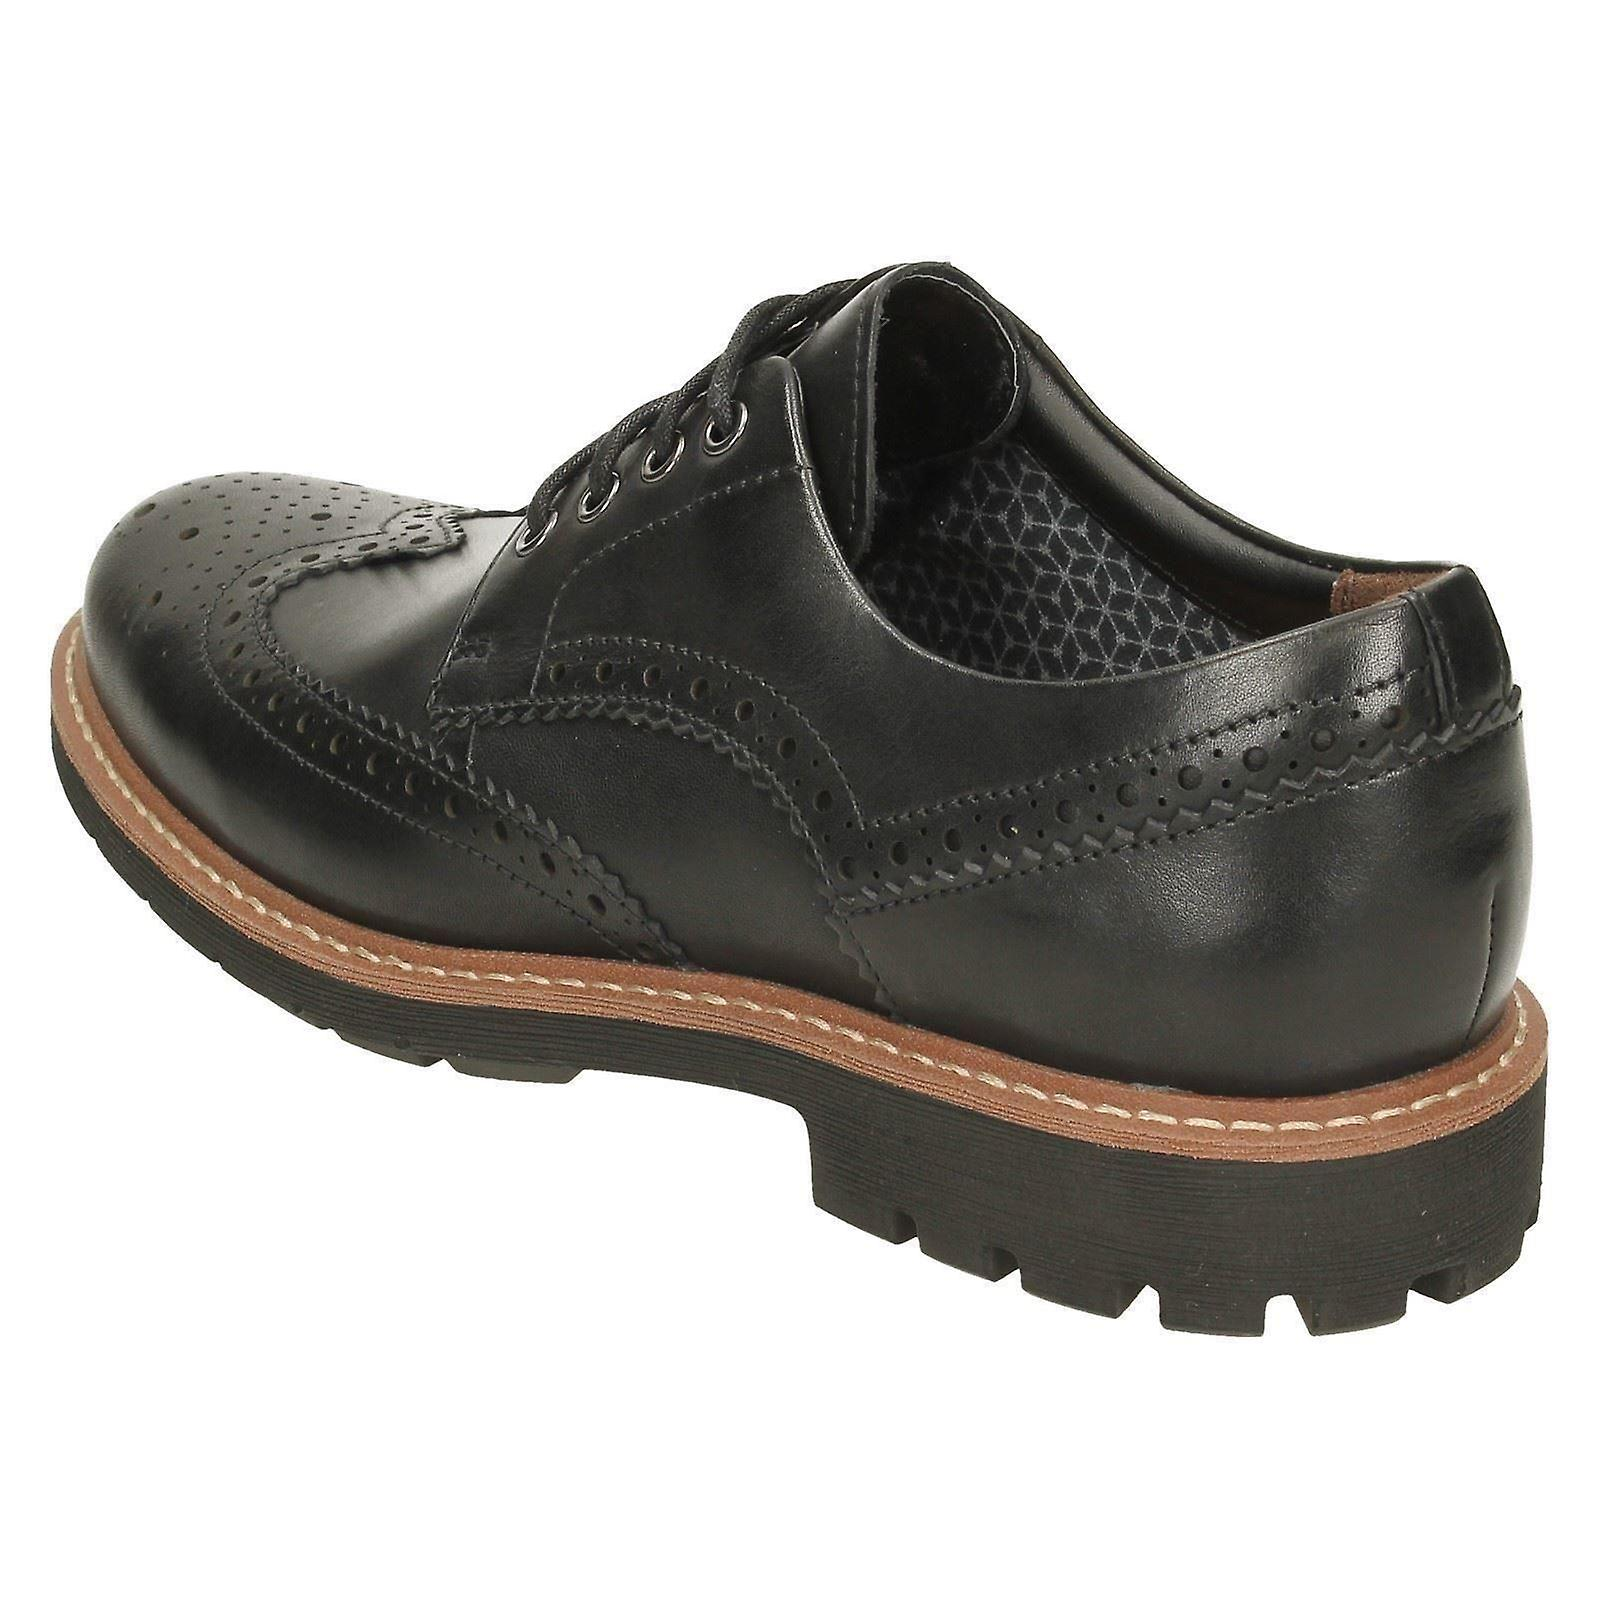 b7d53b88 Mens Clarks Formal Brogues Batcombe Wing - Black Leather - UK Size 12G - EU  Size 47 - US Size 13M